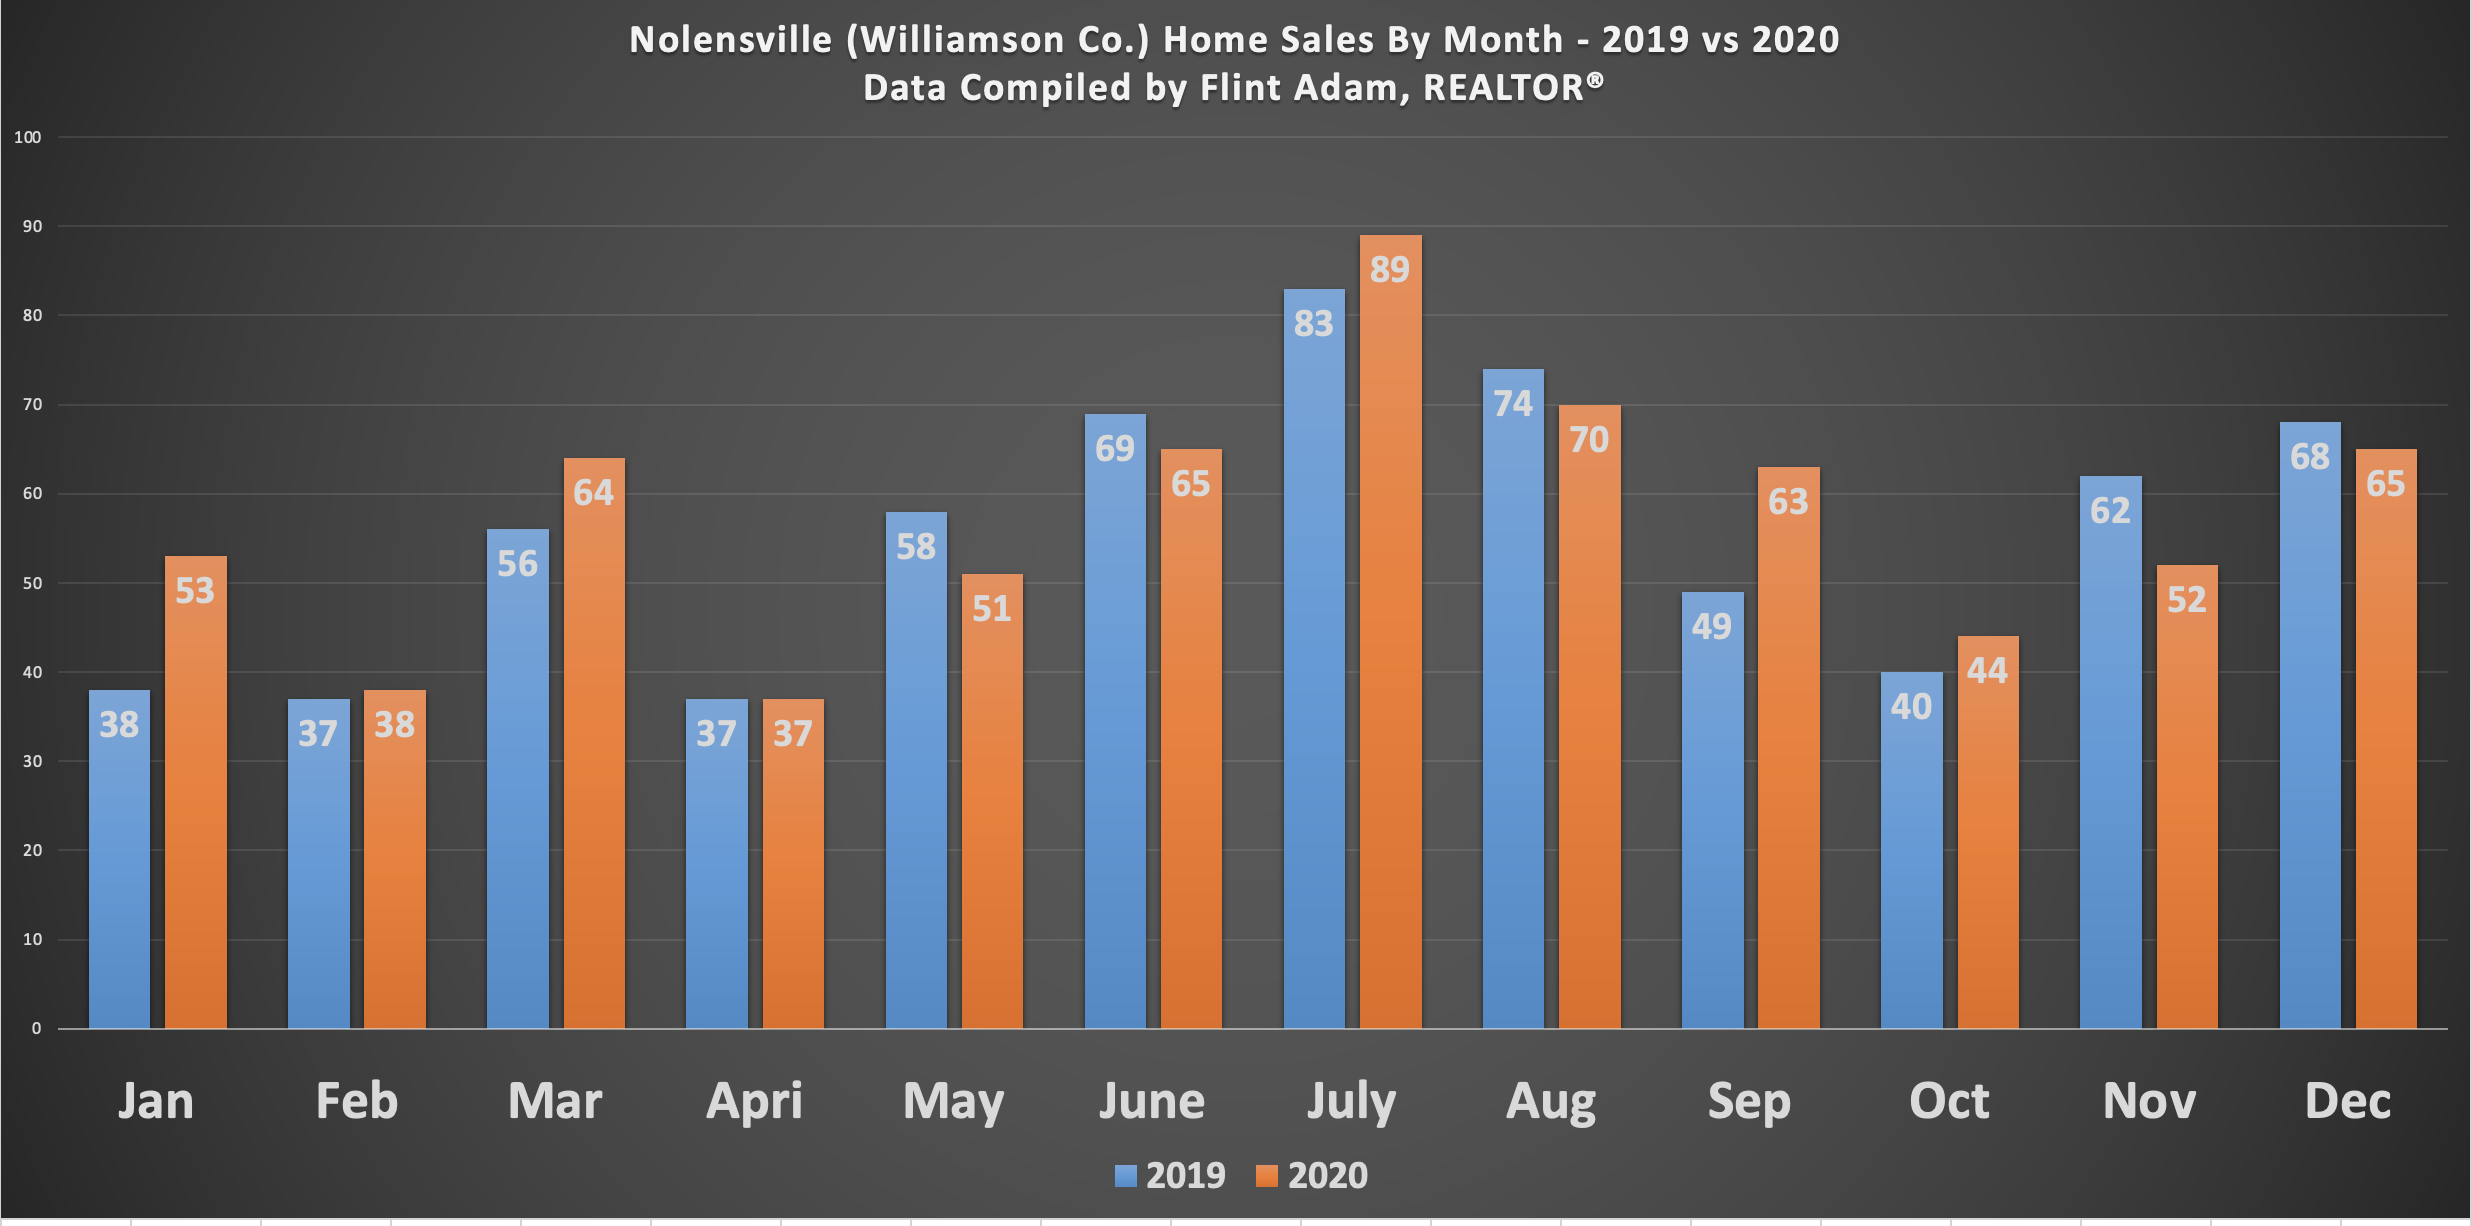 Nolensville Month by Month Home Sales - 2019 vs 2020